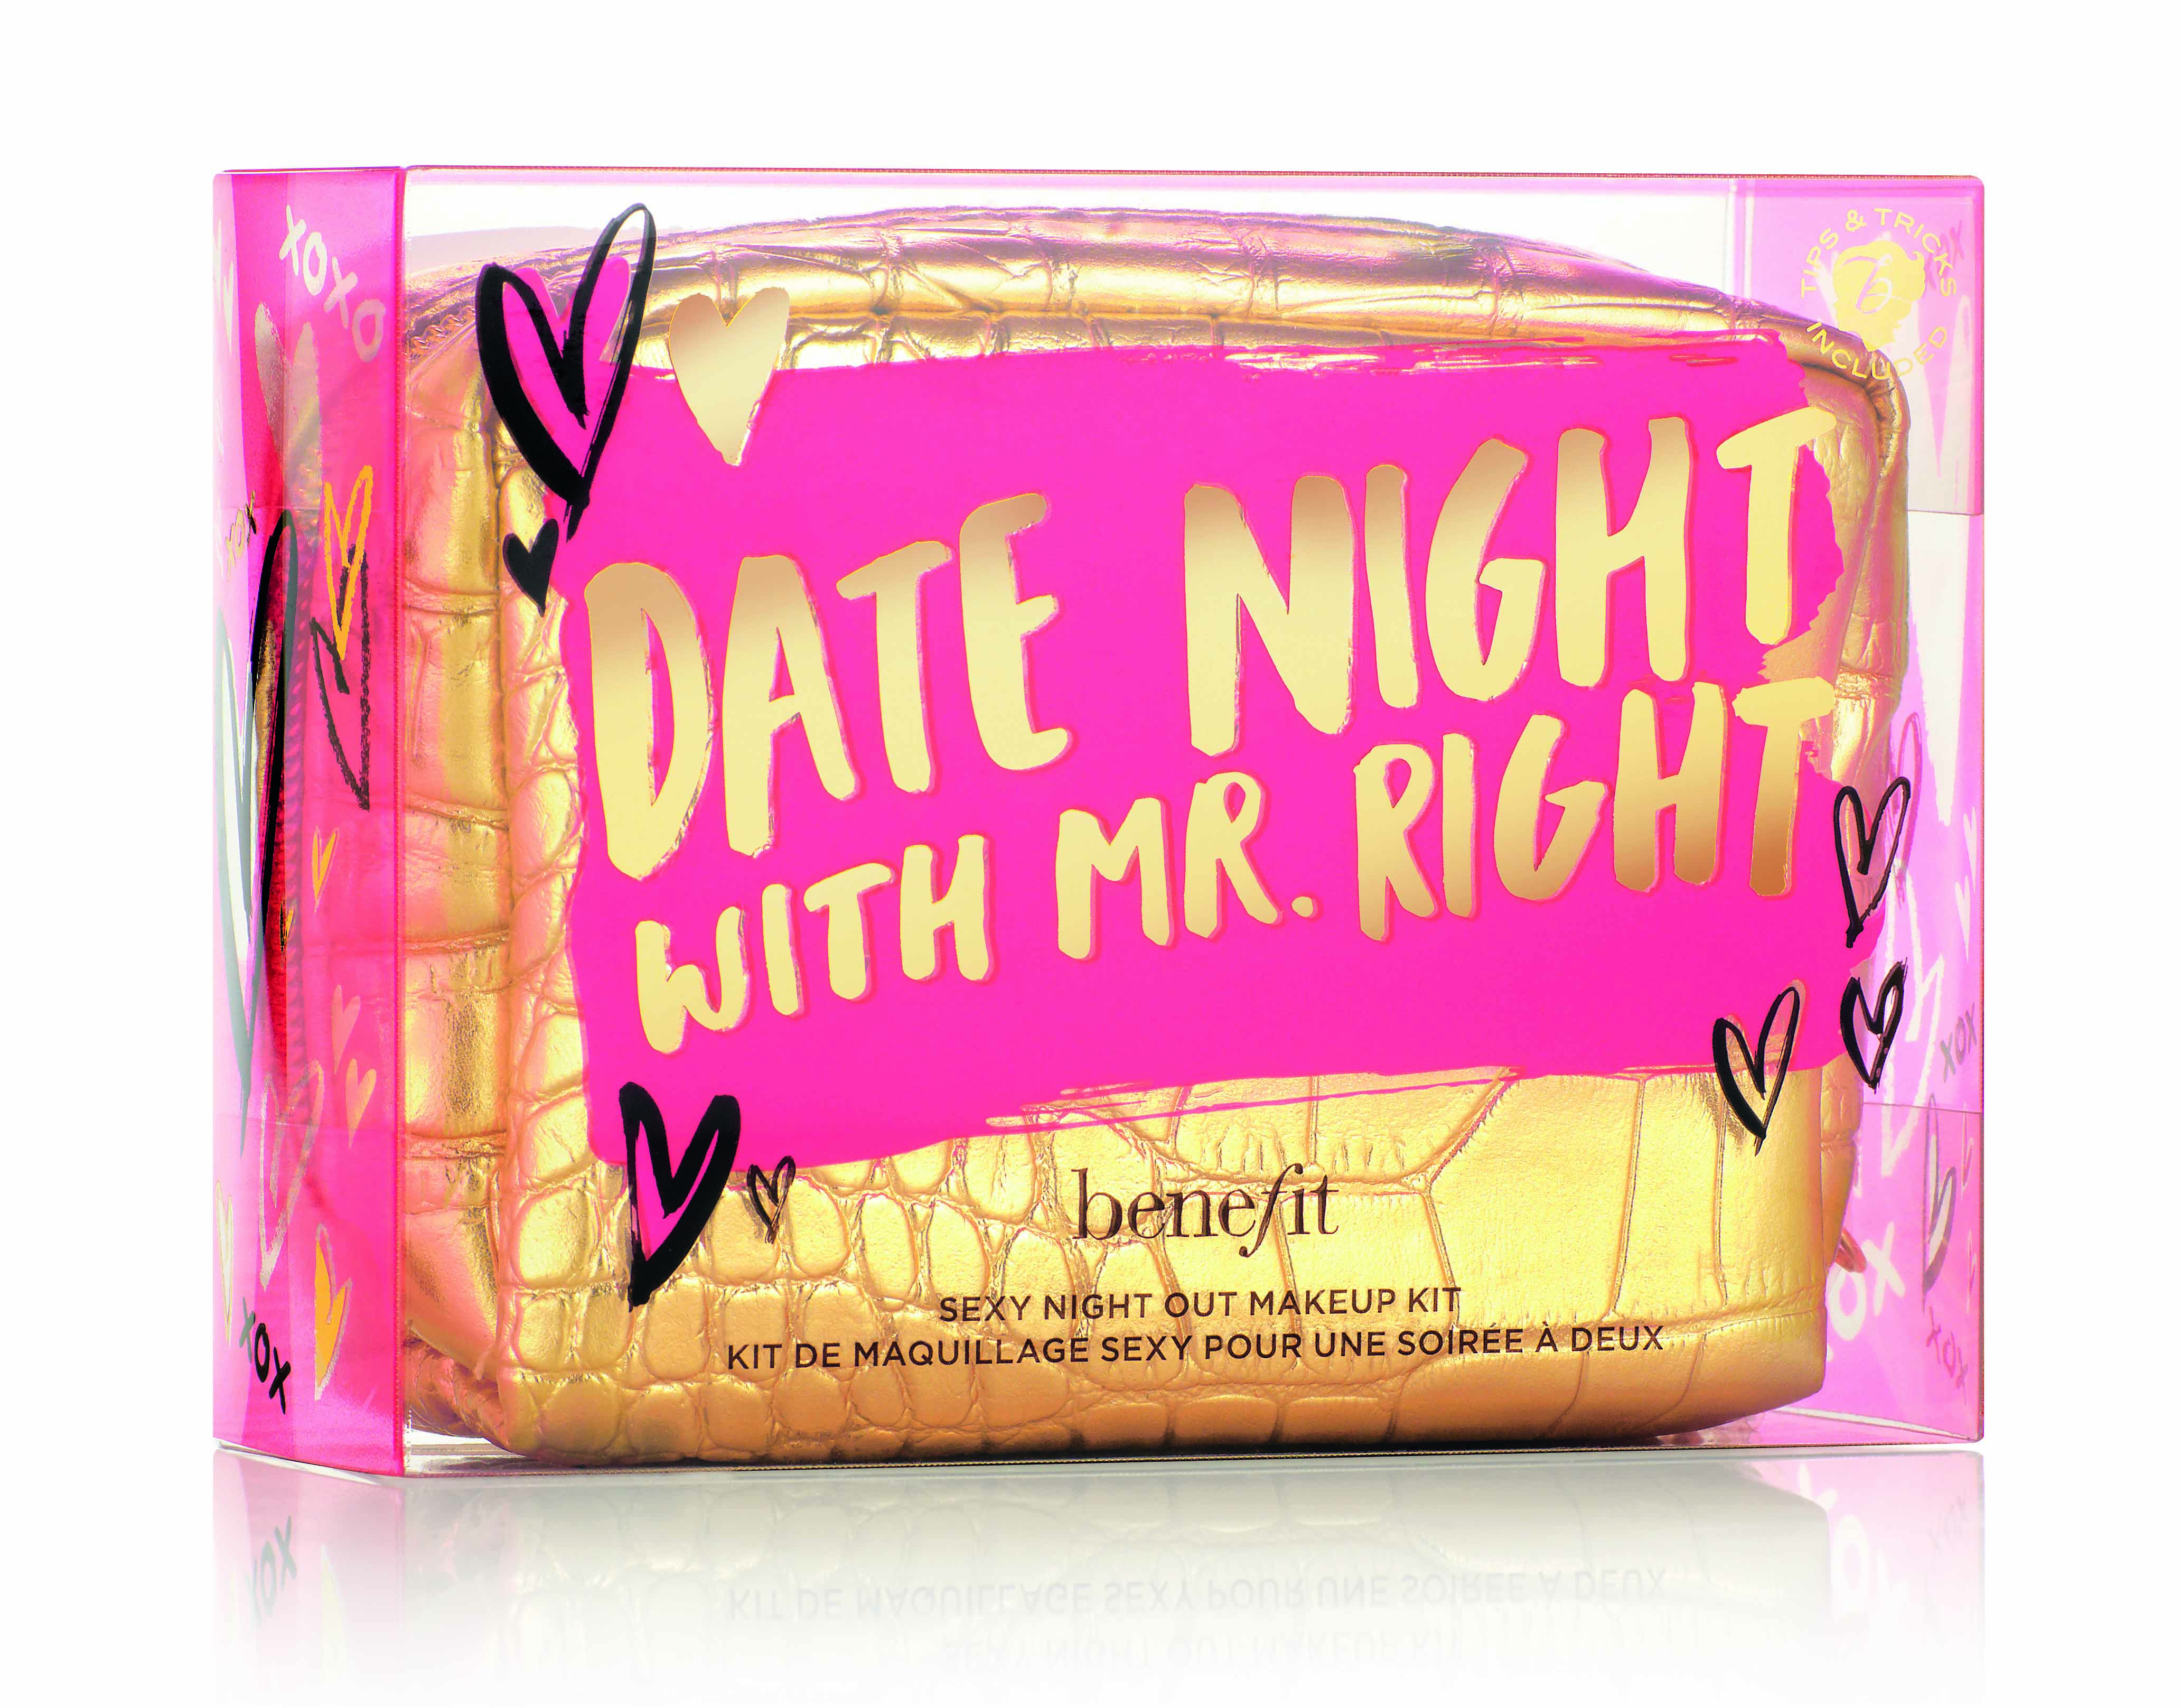 Benefit autunno-inverno 2017: la pochette da collezione Date night with Mr. Right